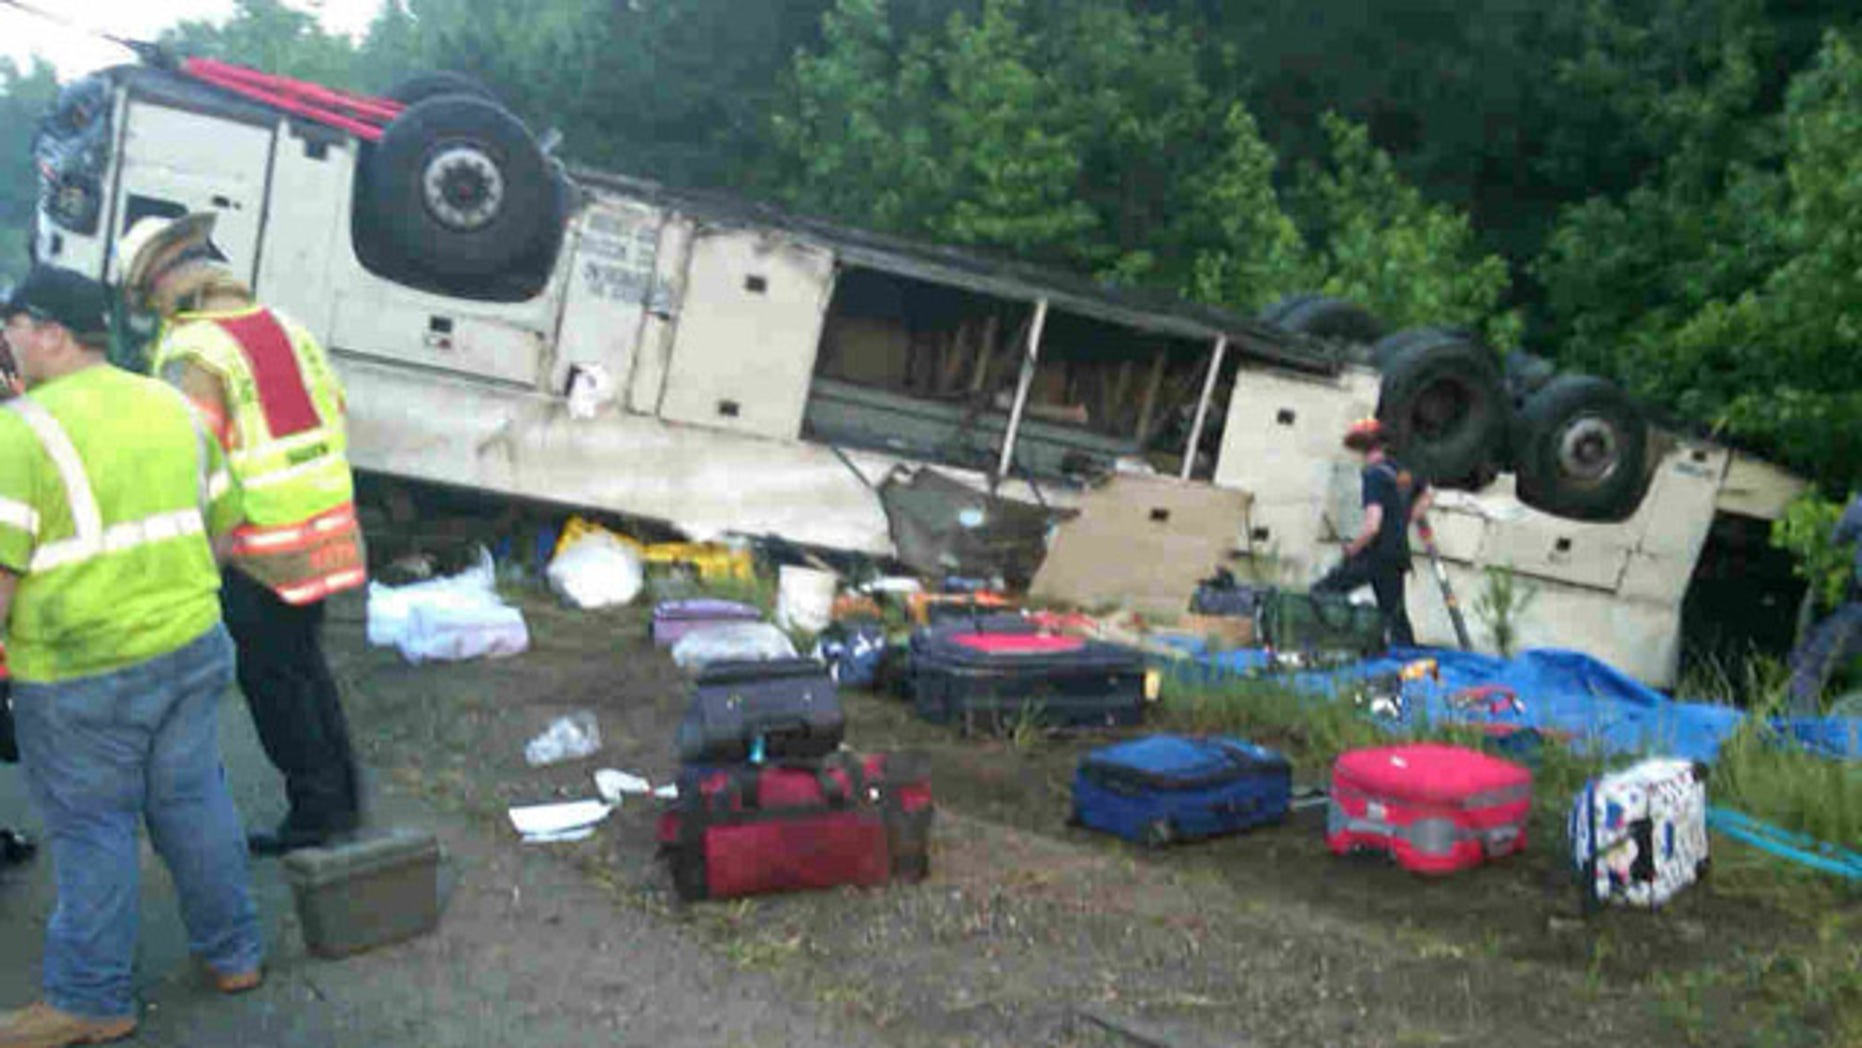 May 31: A SkyExpress bus headed to New York City swerved off northbound Interstate 95, killing four people and sending more than 50 others to the hospital.